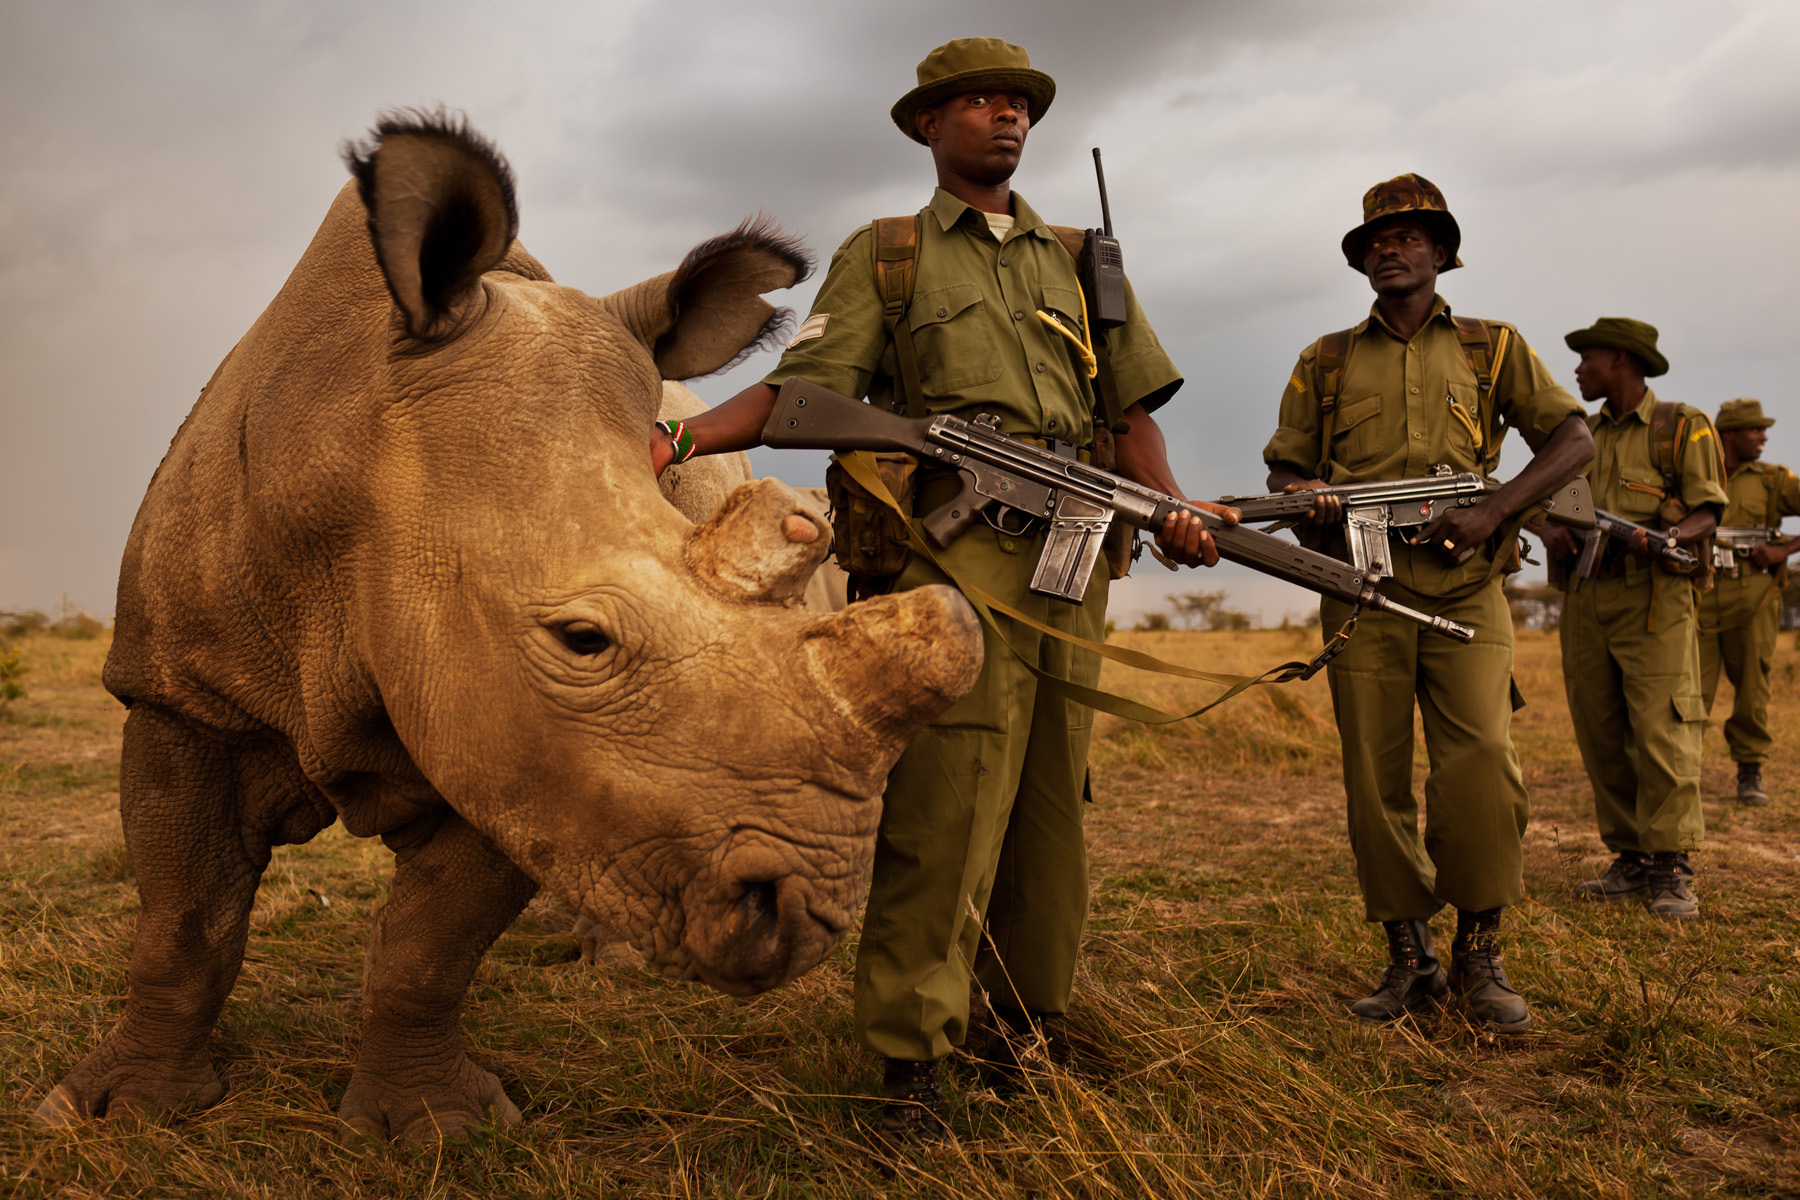 """OL PEJETA CONSERVANCY, KENYA, JULY 2011:  A four man anti-poaching team permanently guards Northern White Rhino on Ol Pejeta Conservancy in Kenya, 13 July 2011. The Ol Pejeta Conservancy is an important """"not-for-profit"""" wildlife conservancy in the Laikipia District of Kenya and the largest sanctuary for black rhinos in East Africa. It is also the home of 4 of the world's remaining 8 Northern White Rhino, the worlds most endangered animal. There has been an increase in poaching incidents on Ol Pejeta recently, in line with a massive worldwide increase in rhino poaching linked to the rise in the Asian middle class. Anti-poaching teams provide close protection to the rhino, with 24 hour observation over all rhino on Ol Pejeta and 24 hour armed guard protection over the 4 Northern White Rhino who are kept in their own Boma area. The team have developed extraordinary relationships with these Rhino, leaning on them, scratching them and displaying tremendous affection towards these most endangered of animals. Each of the men in these teams feels a genuine vocation towards the protection of these animals, something the rhino seem to sense, and this emerges on a daily basis as the men walk with the rhino through their day. (Photo by Brent Stirton/Reportage for National Geographic.)"""